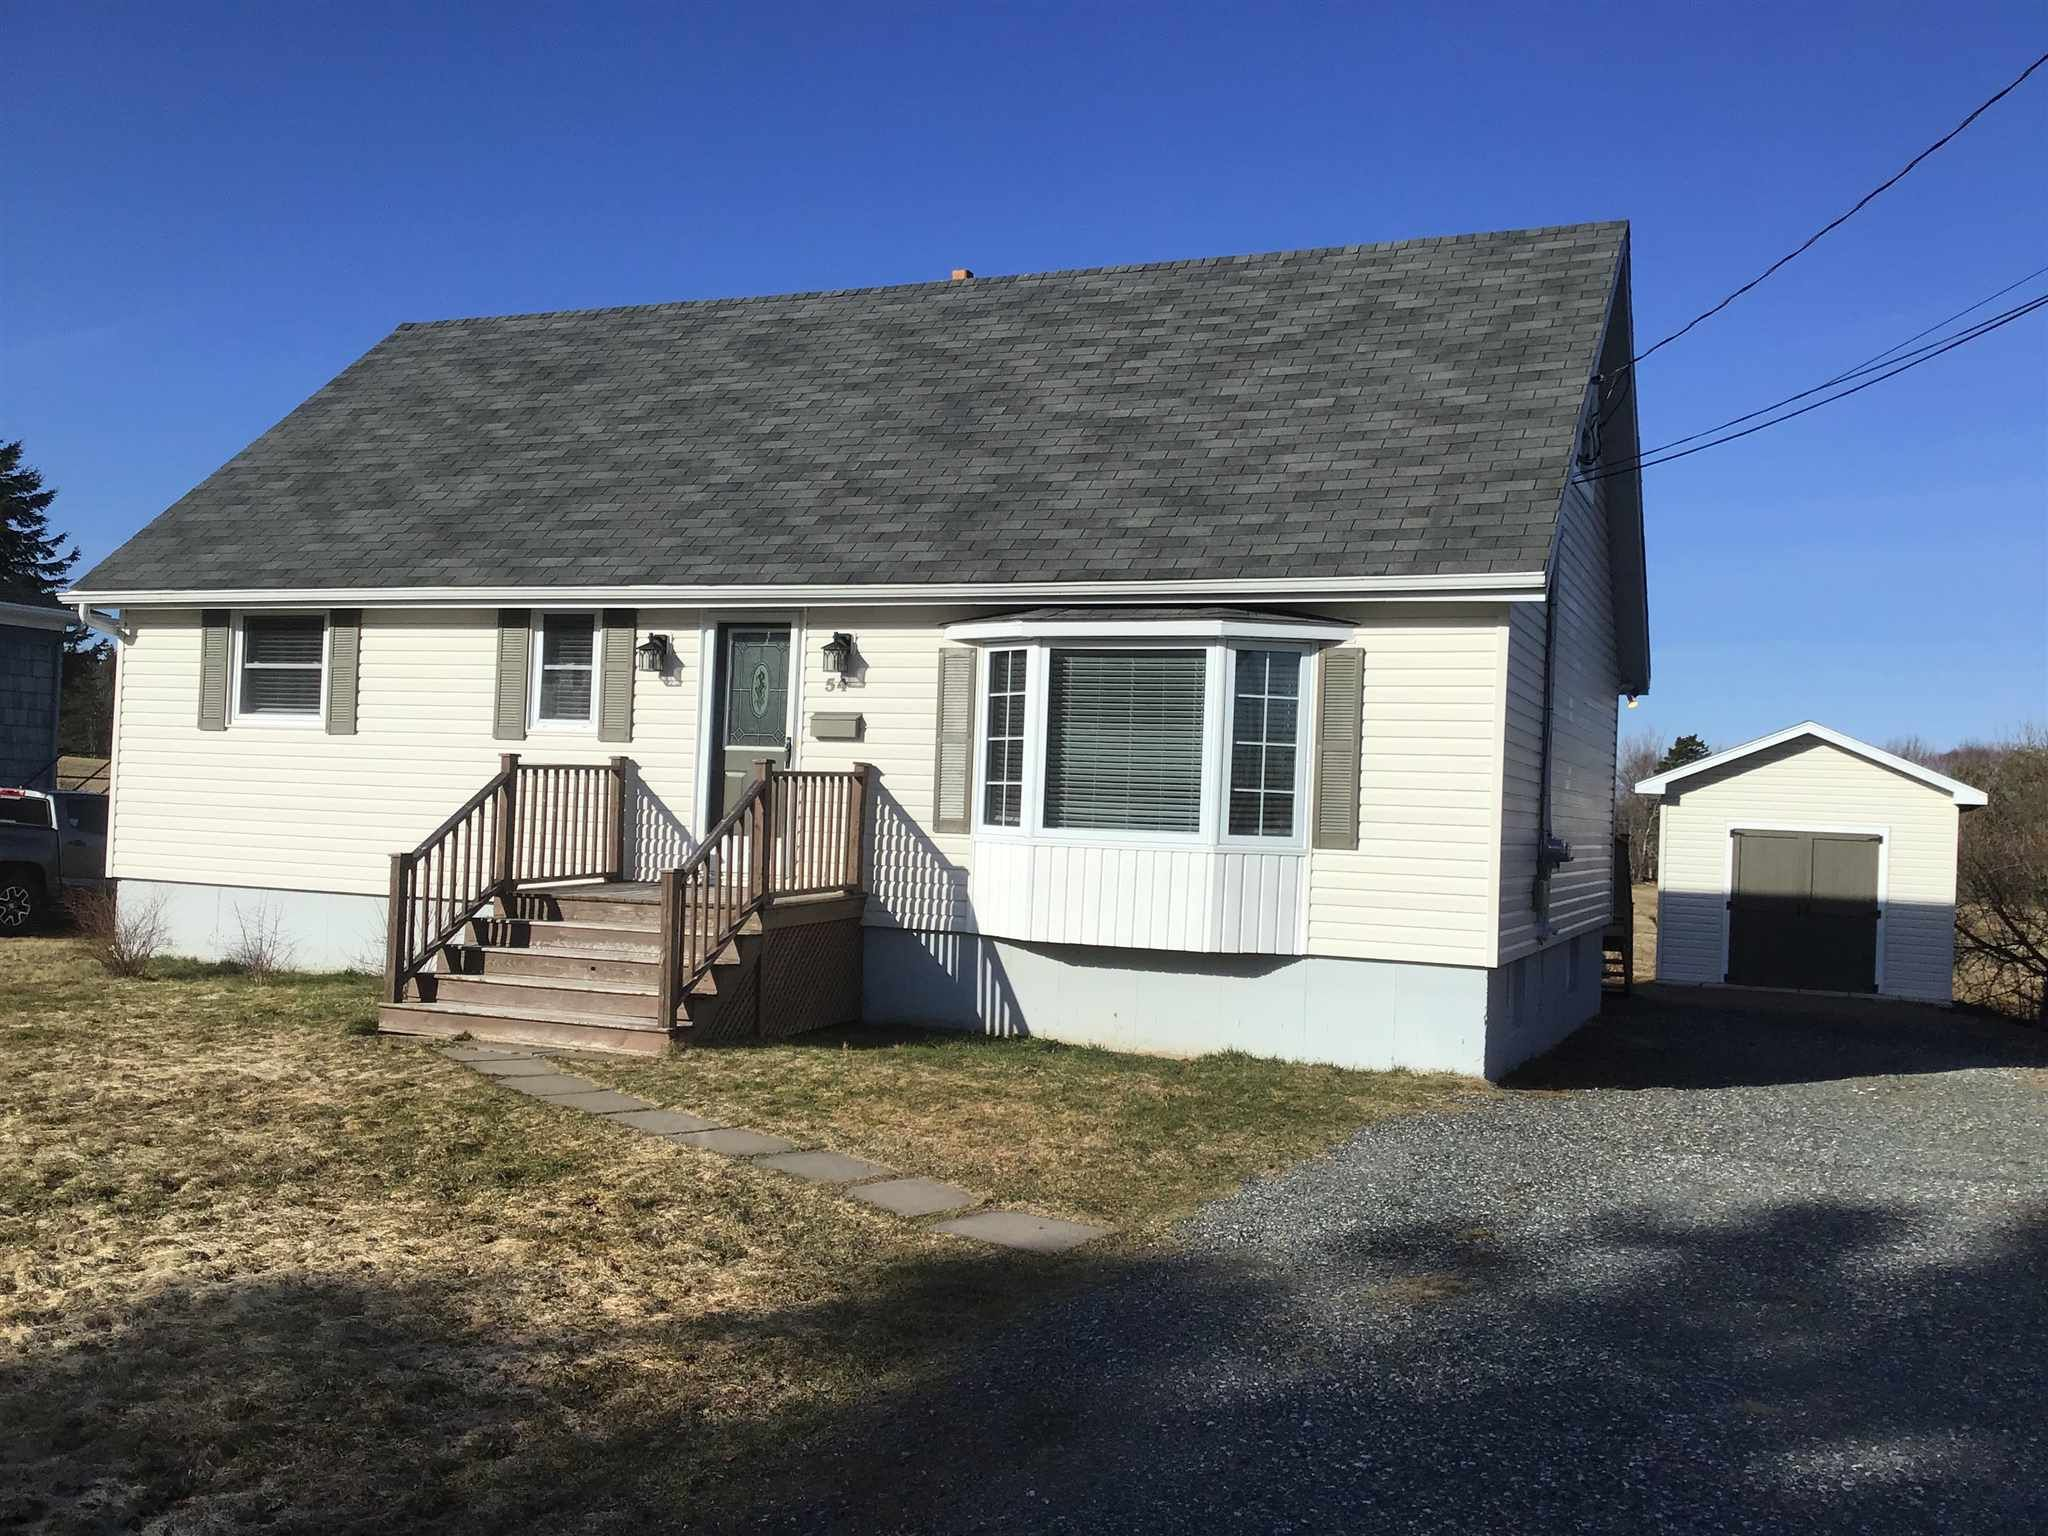 Main Photo: 54 Melwood Drive in Westmount: 202-Sydney River / Coxheath Residential for sale (Cape Breton)  : MLS®# 202106755